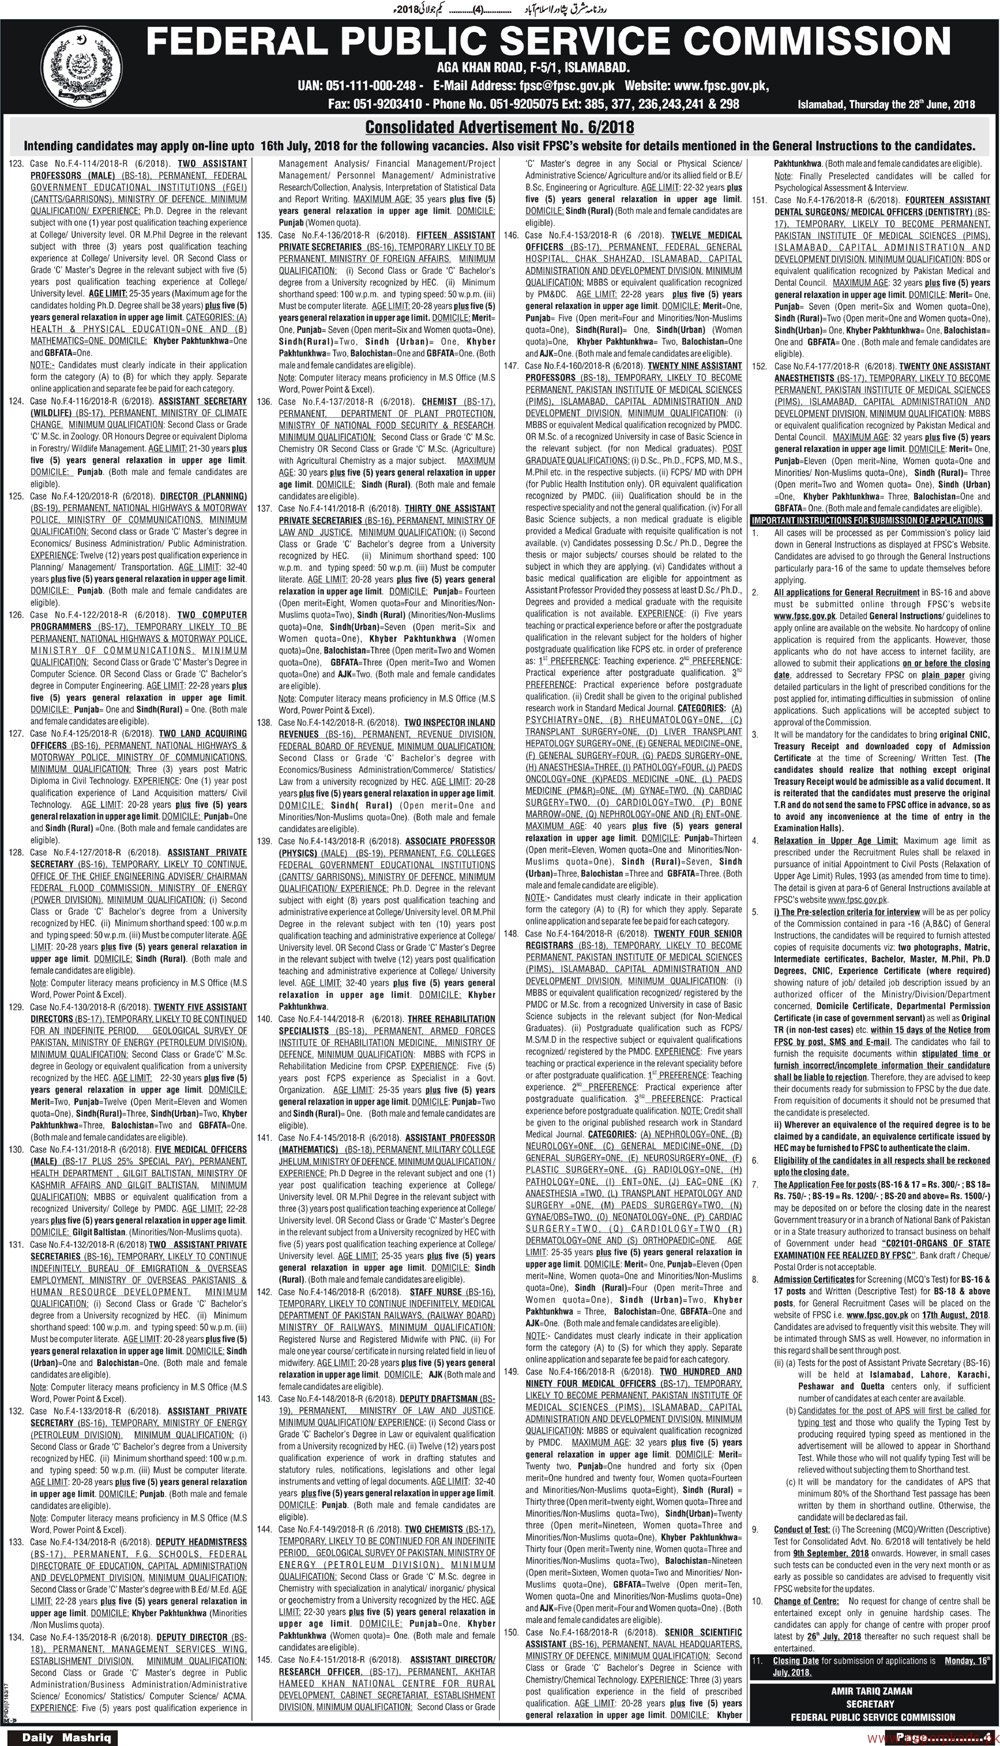 Federal Public Service Commission Jobs 2018 Latest Jobs Advertisement No 06-2018